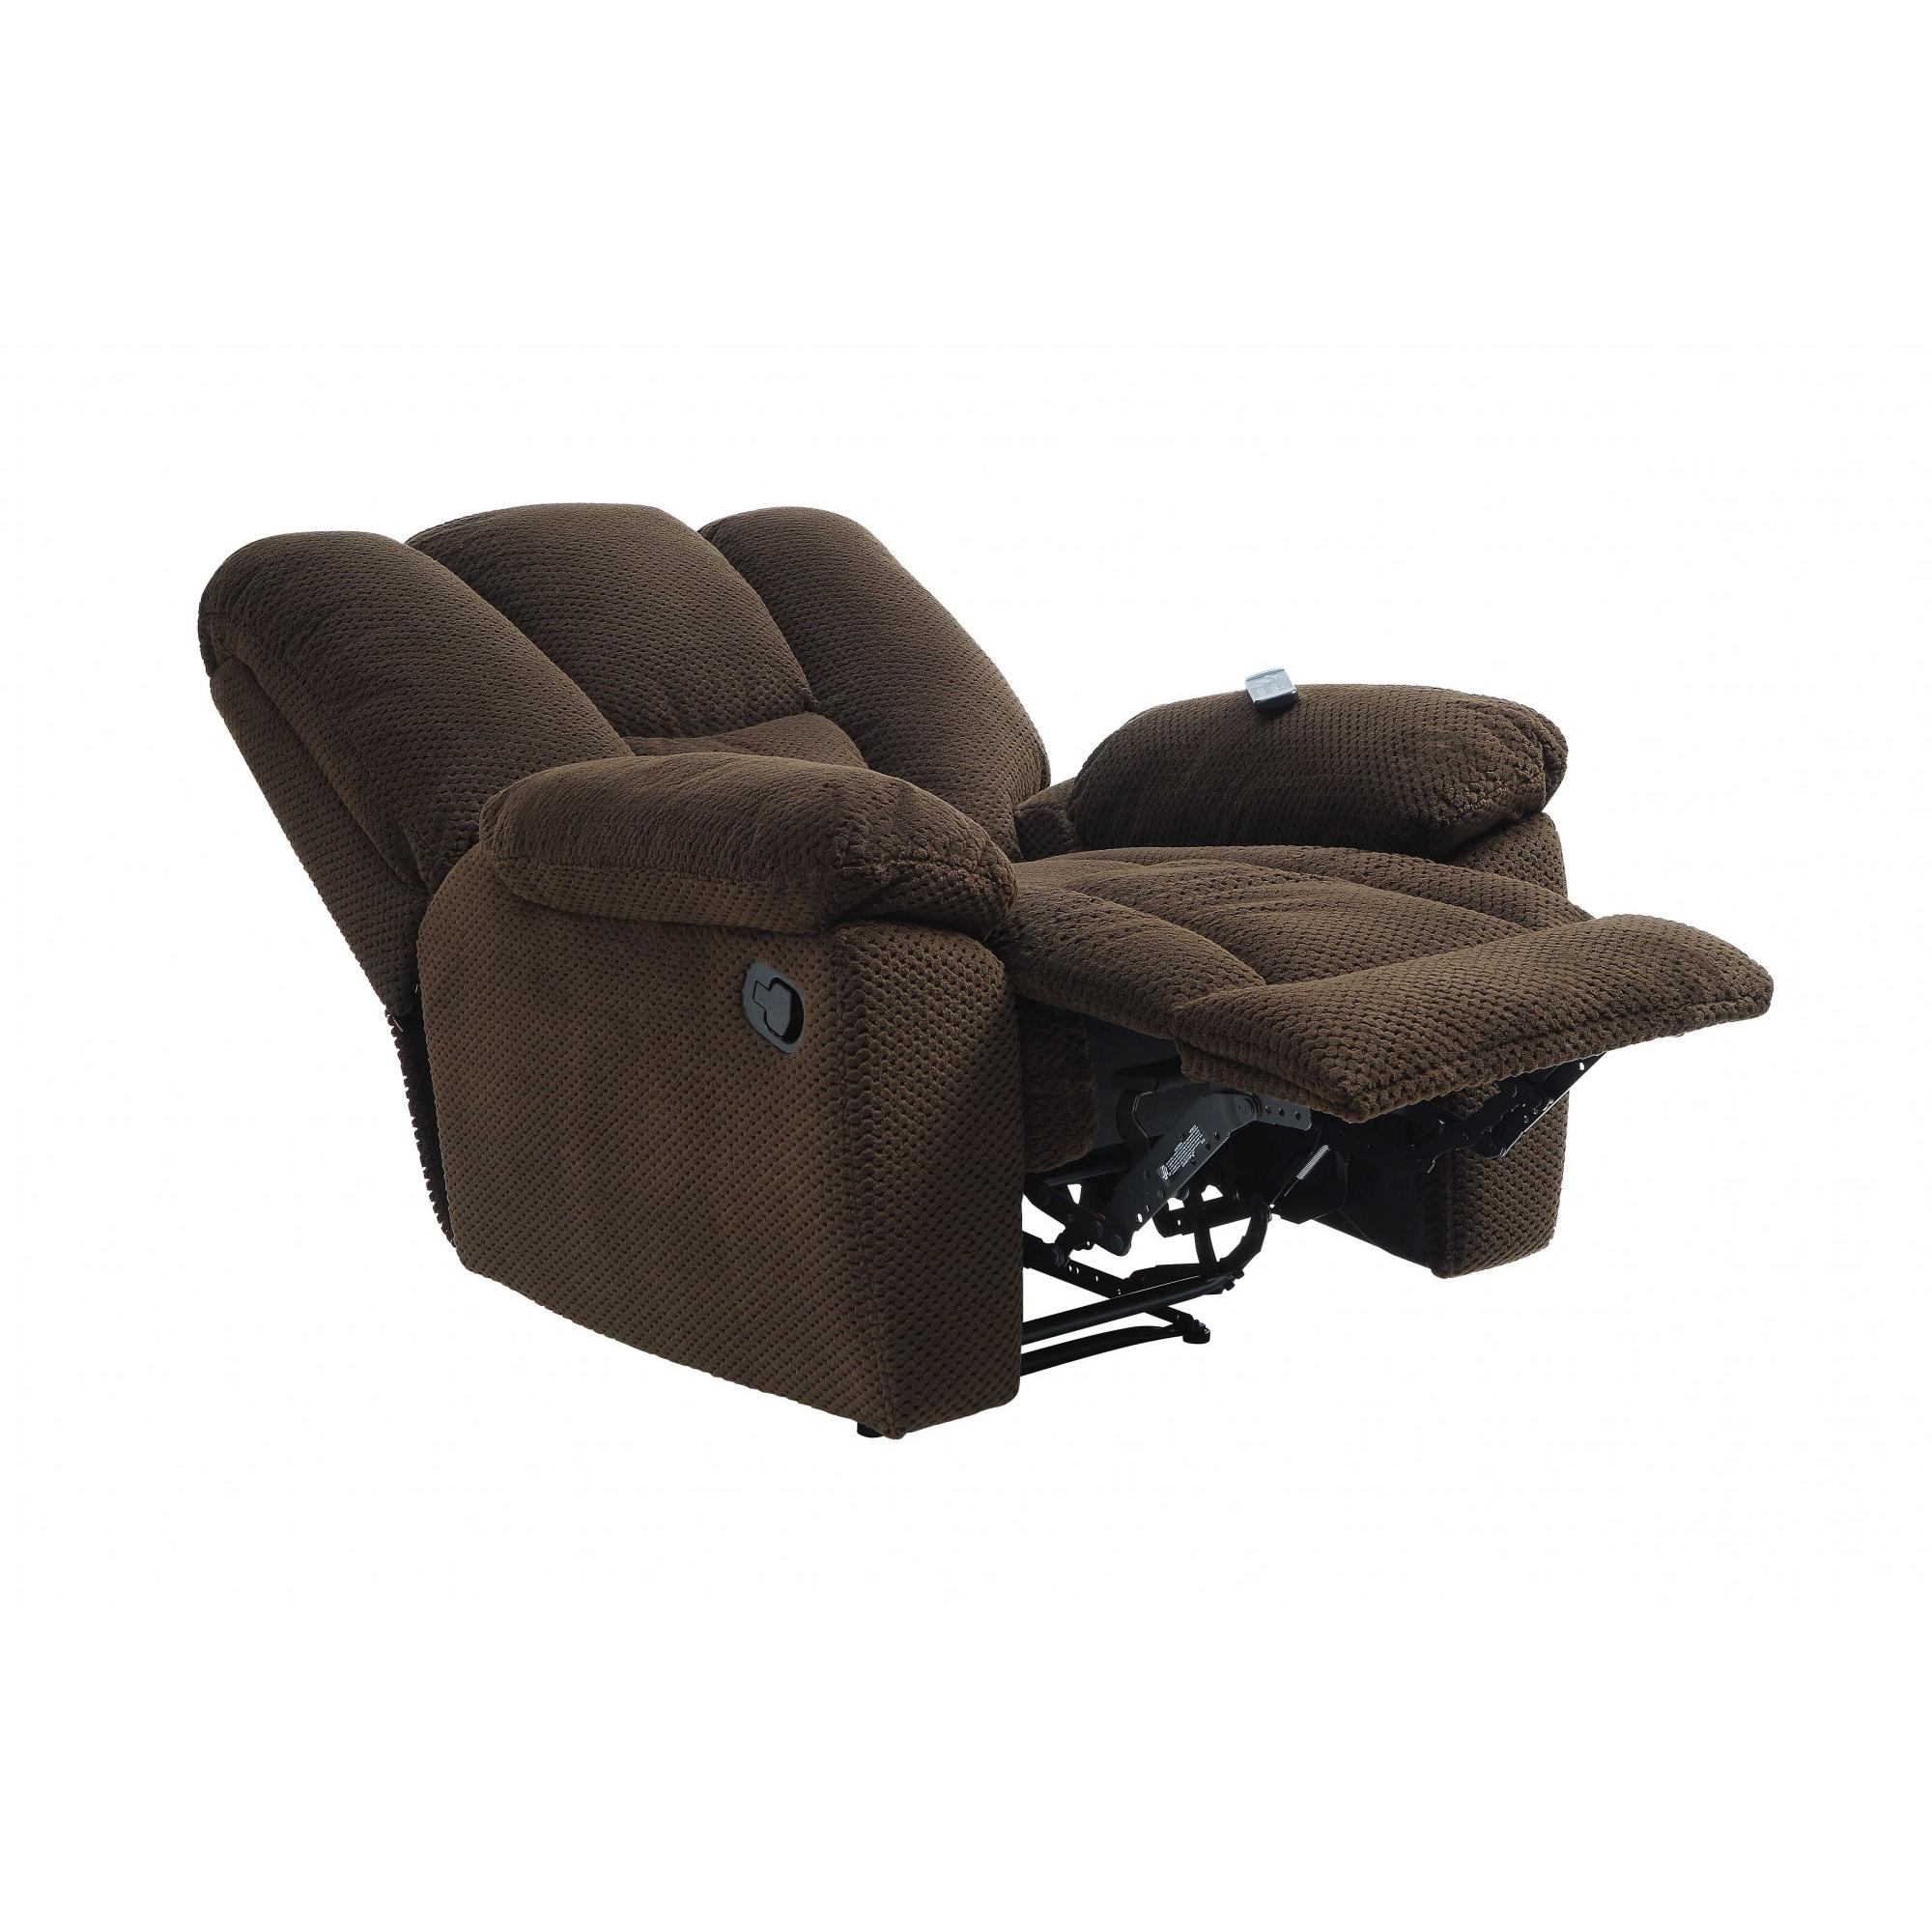 Serta Big U0026 Tall Memory Foam Massage Recliner With USB Charging, Beige    Walmart.com